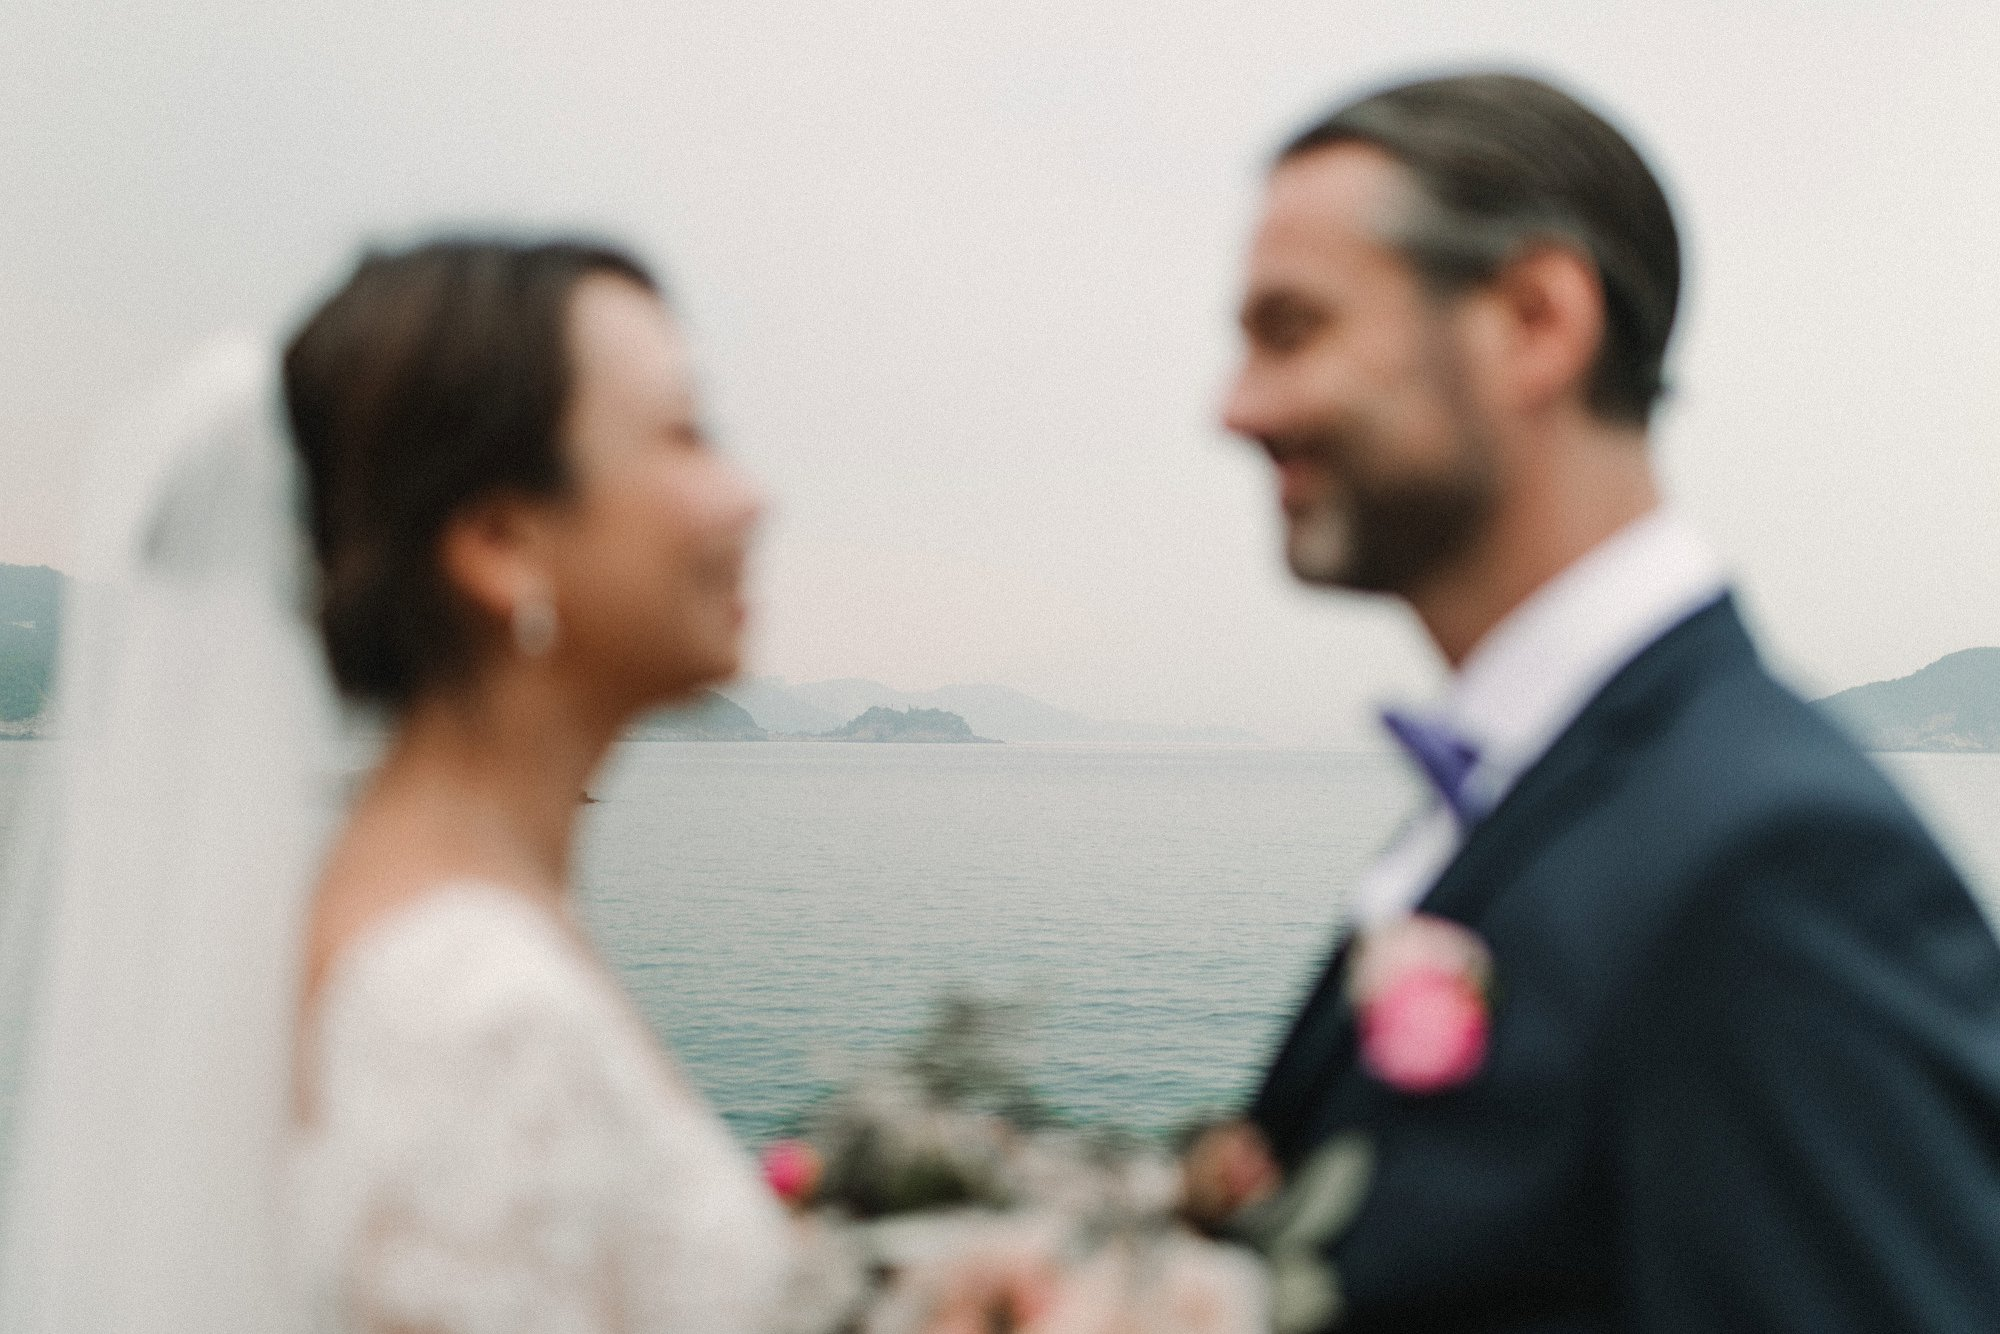 Hong Kong Wedding Photographer Natalie Pluck captures the beautiful wedding of Veronica and Steve. Lace wedding dress with plunging illusion neckline and detachable train. Festoon lighting for a romantic evening reception by candlelight. Fine art Wedding Photography dream wedding inspiration. Wedding reception at one thirty-one in Sai Kung. Unique portraits by lobster bay on the rocks by the sea. Navy suit and purple bow tie for this relaxed groom. Timeless wedding style, chic up do. Pink bouquet inspiration. Photographed by Natalie Pluck. To see more of this wedding click the link: https://www.nataliepluck.com/hong-kong-wedding-photographer #hongkongweddingphotographer #saikungweddingphotographer #hongkongwedding #veronicalamwedding #saikungwedding #onethirtyone #timelessweddinginspiration #kowloonwedding #hkwedding #bertaweddingdress #bertawedding #detatchabletrain #nataliepluck #dreamweddinggown #weddingdressgoals #relaxedweddingphotography #laidbackweddings